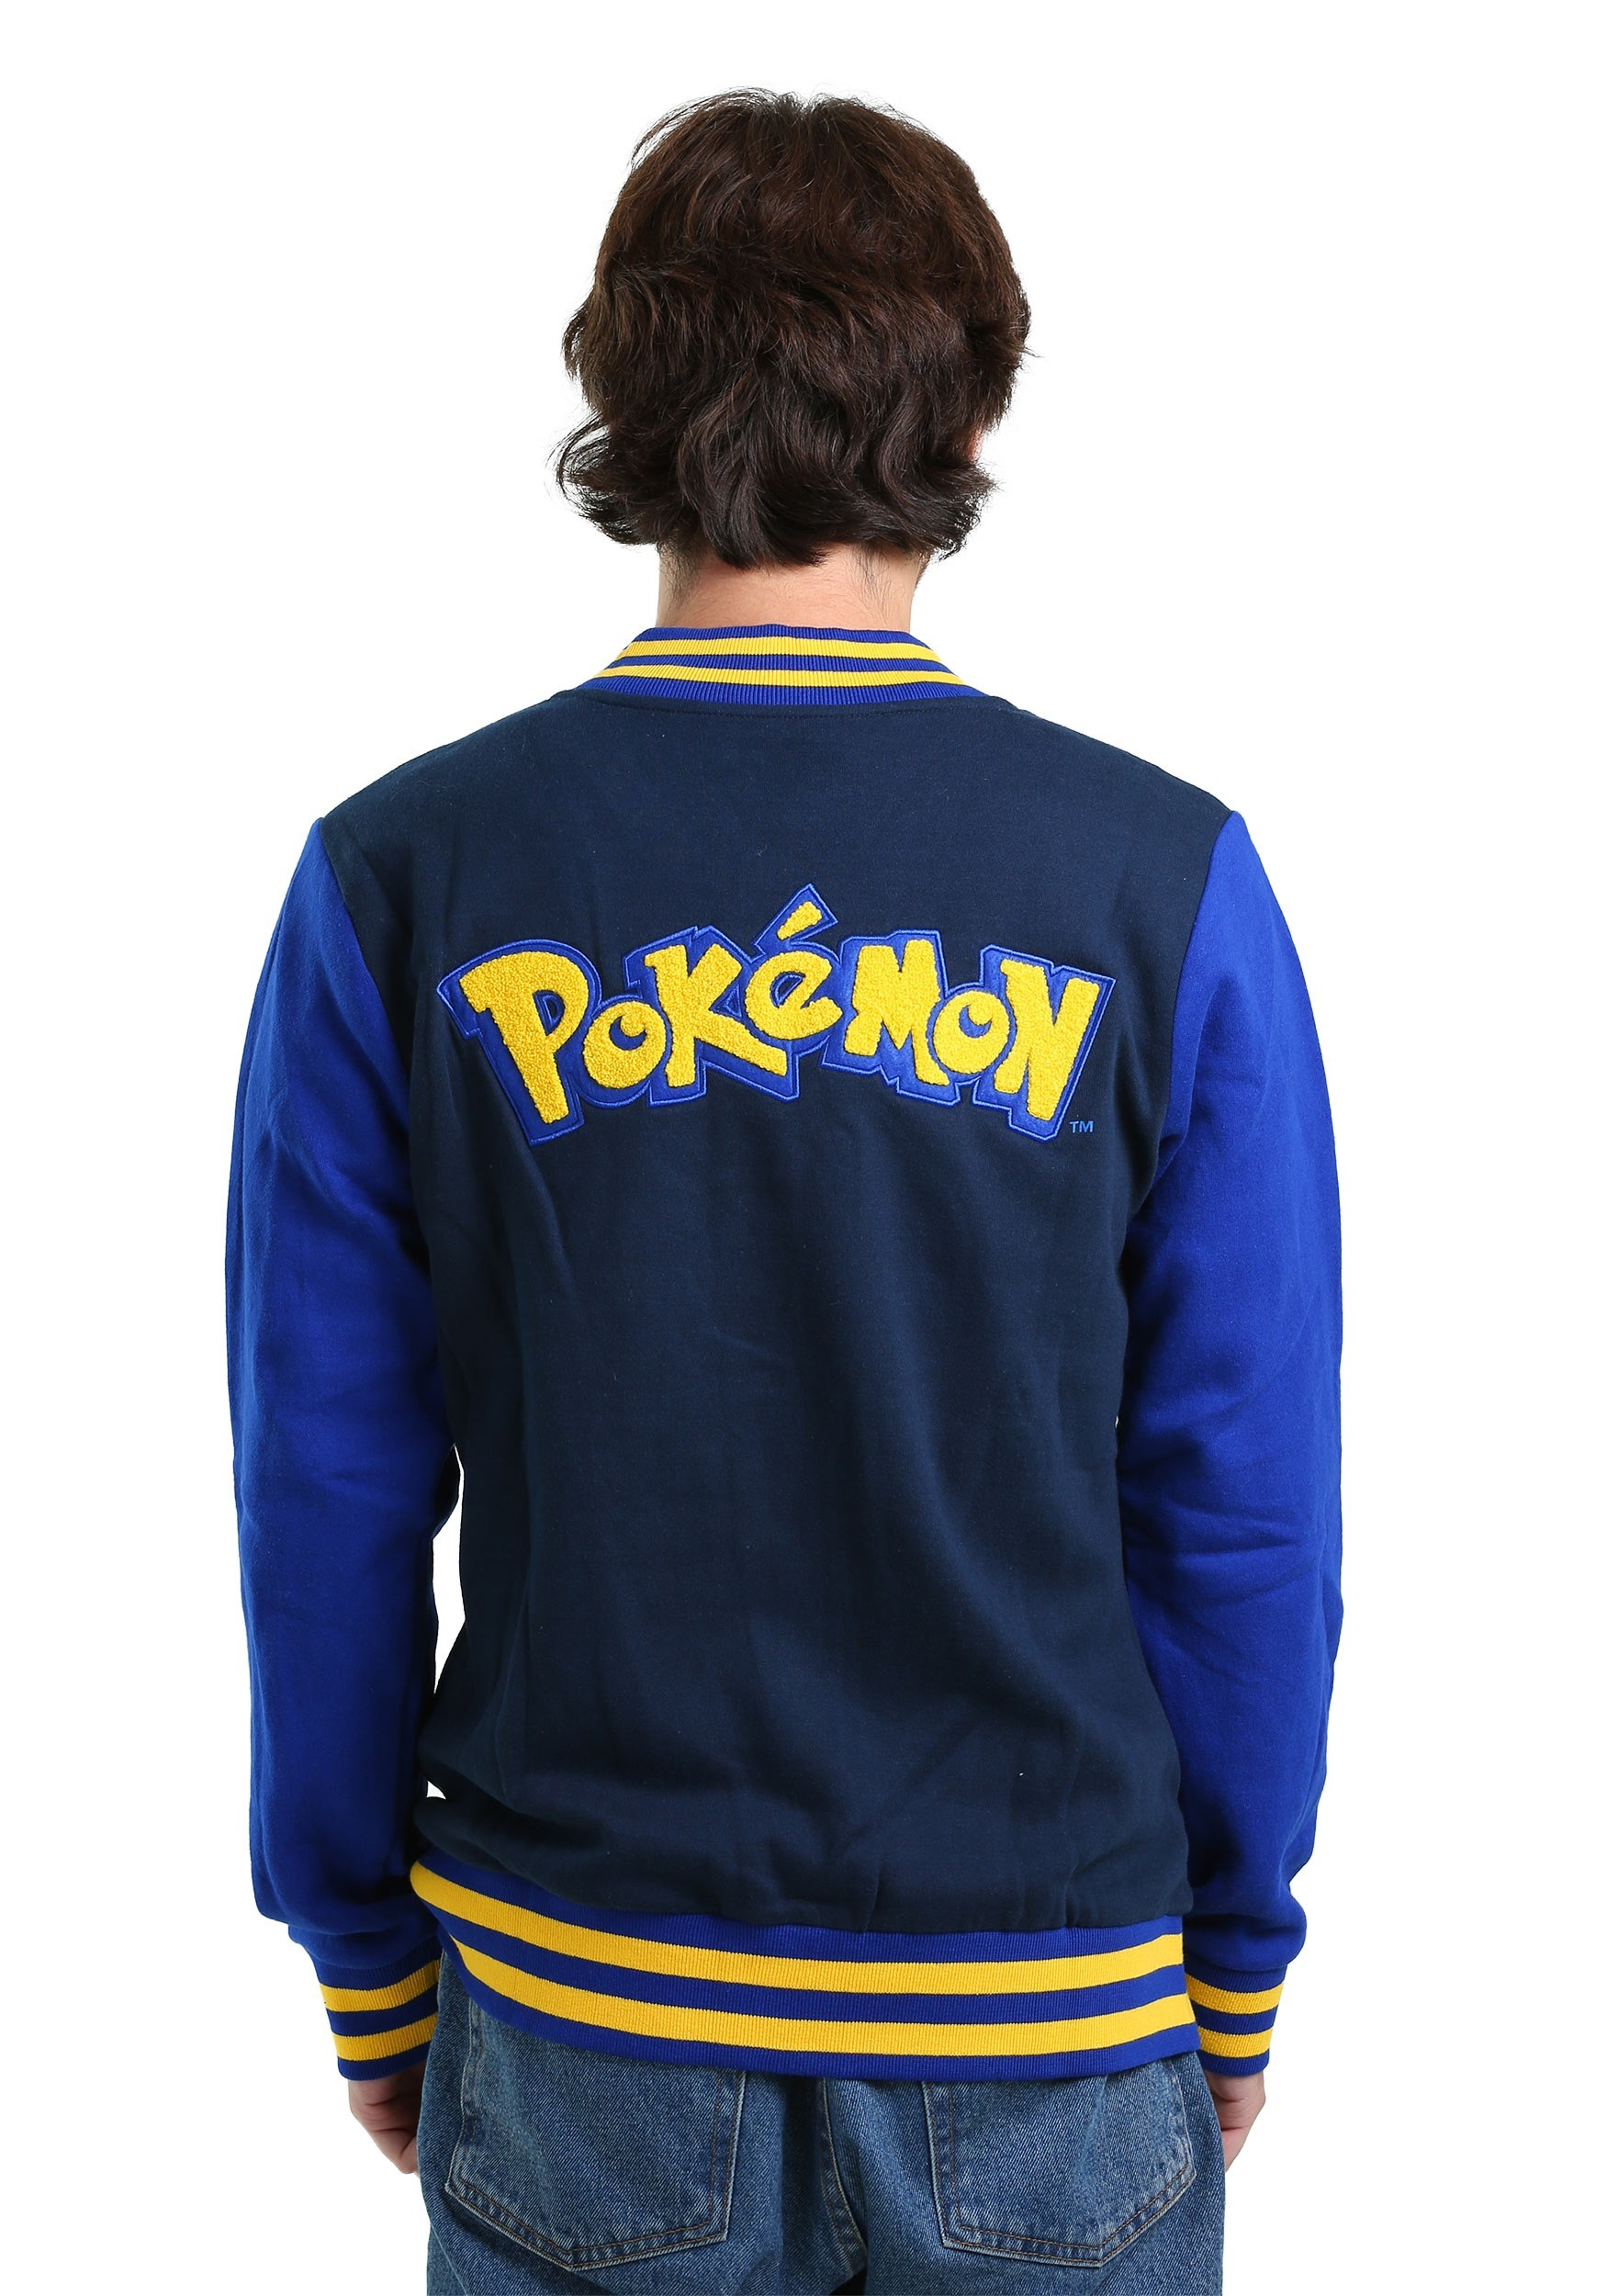 Pokemon Track Jacket For Adults